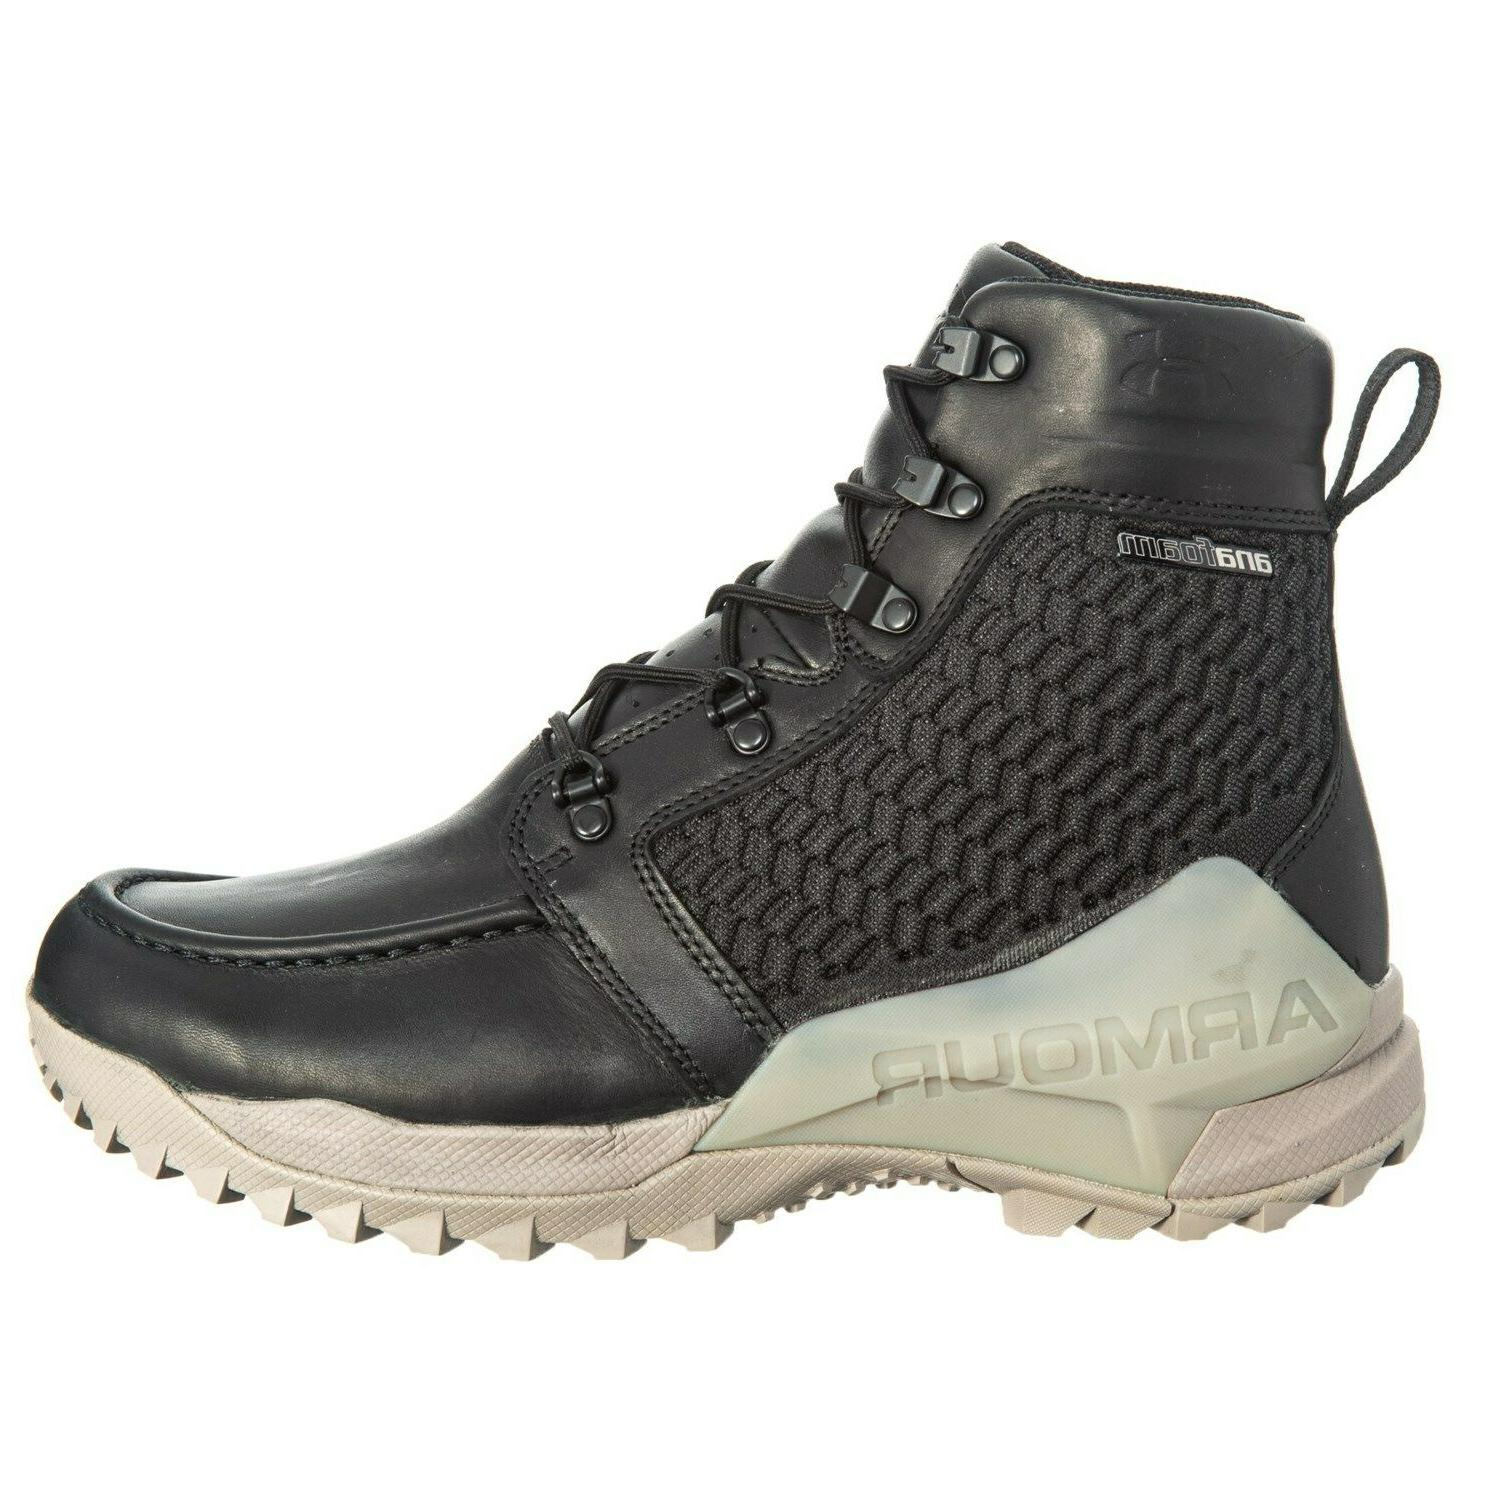 Under Men's Field Ops Hunting Boots